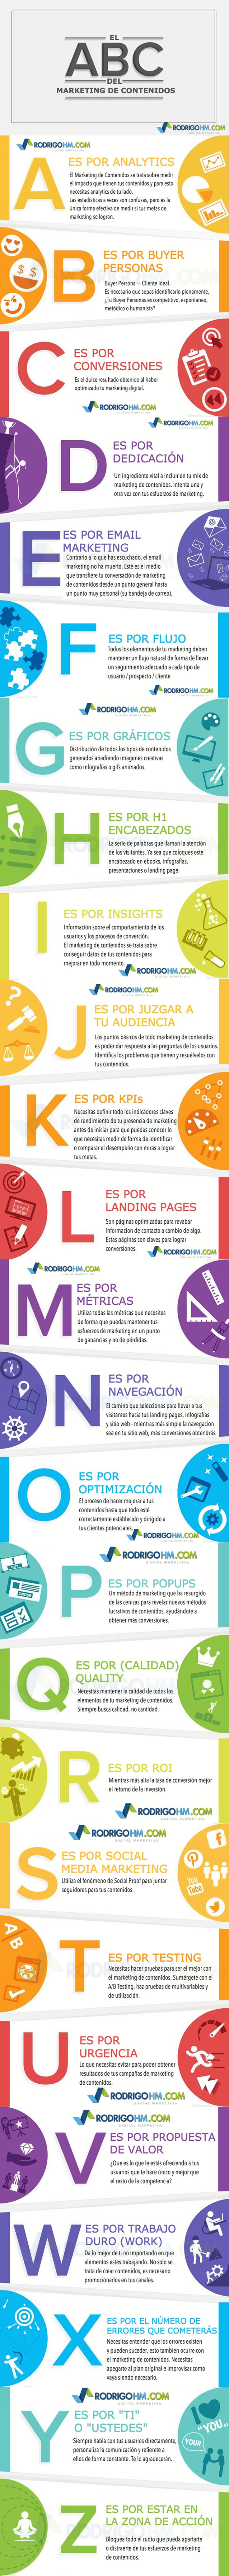 ABC DEL MARKETING DE CONTENIDOS #INFOGRAFIA #INFOGRAPHIC #MARKETING